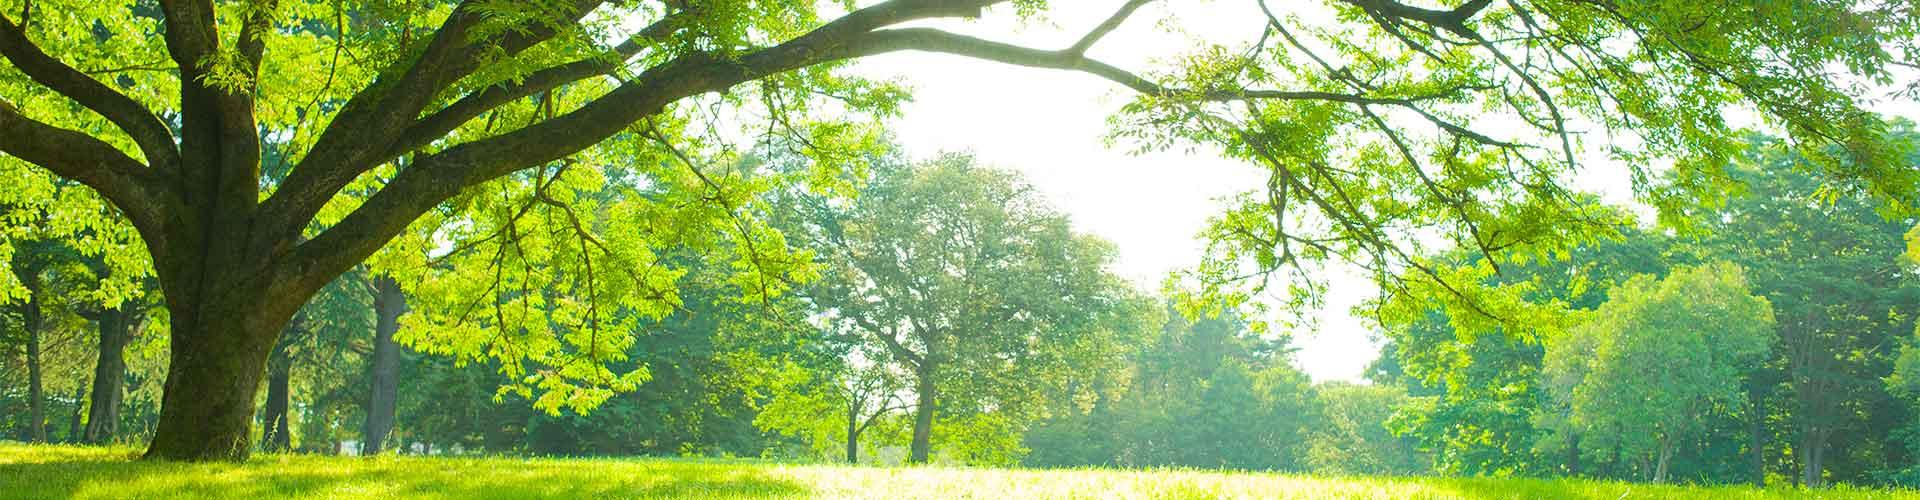 Green leafy woods